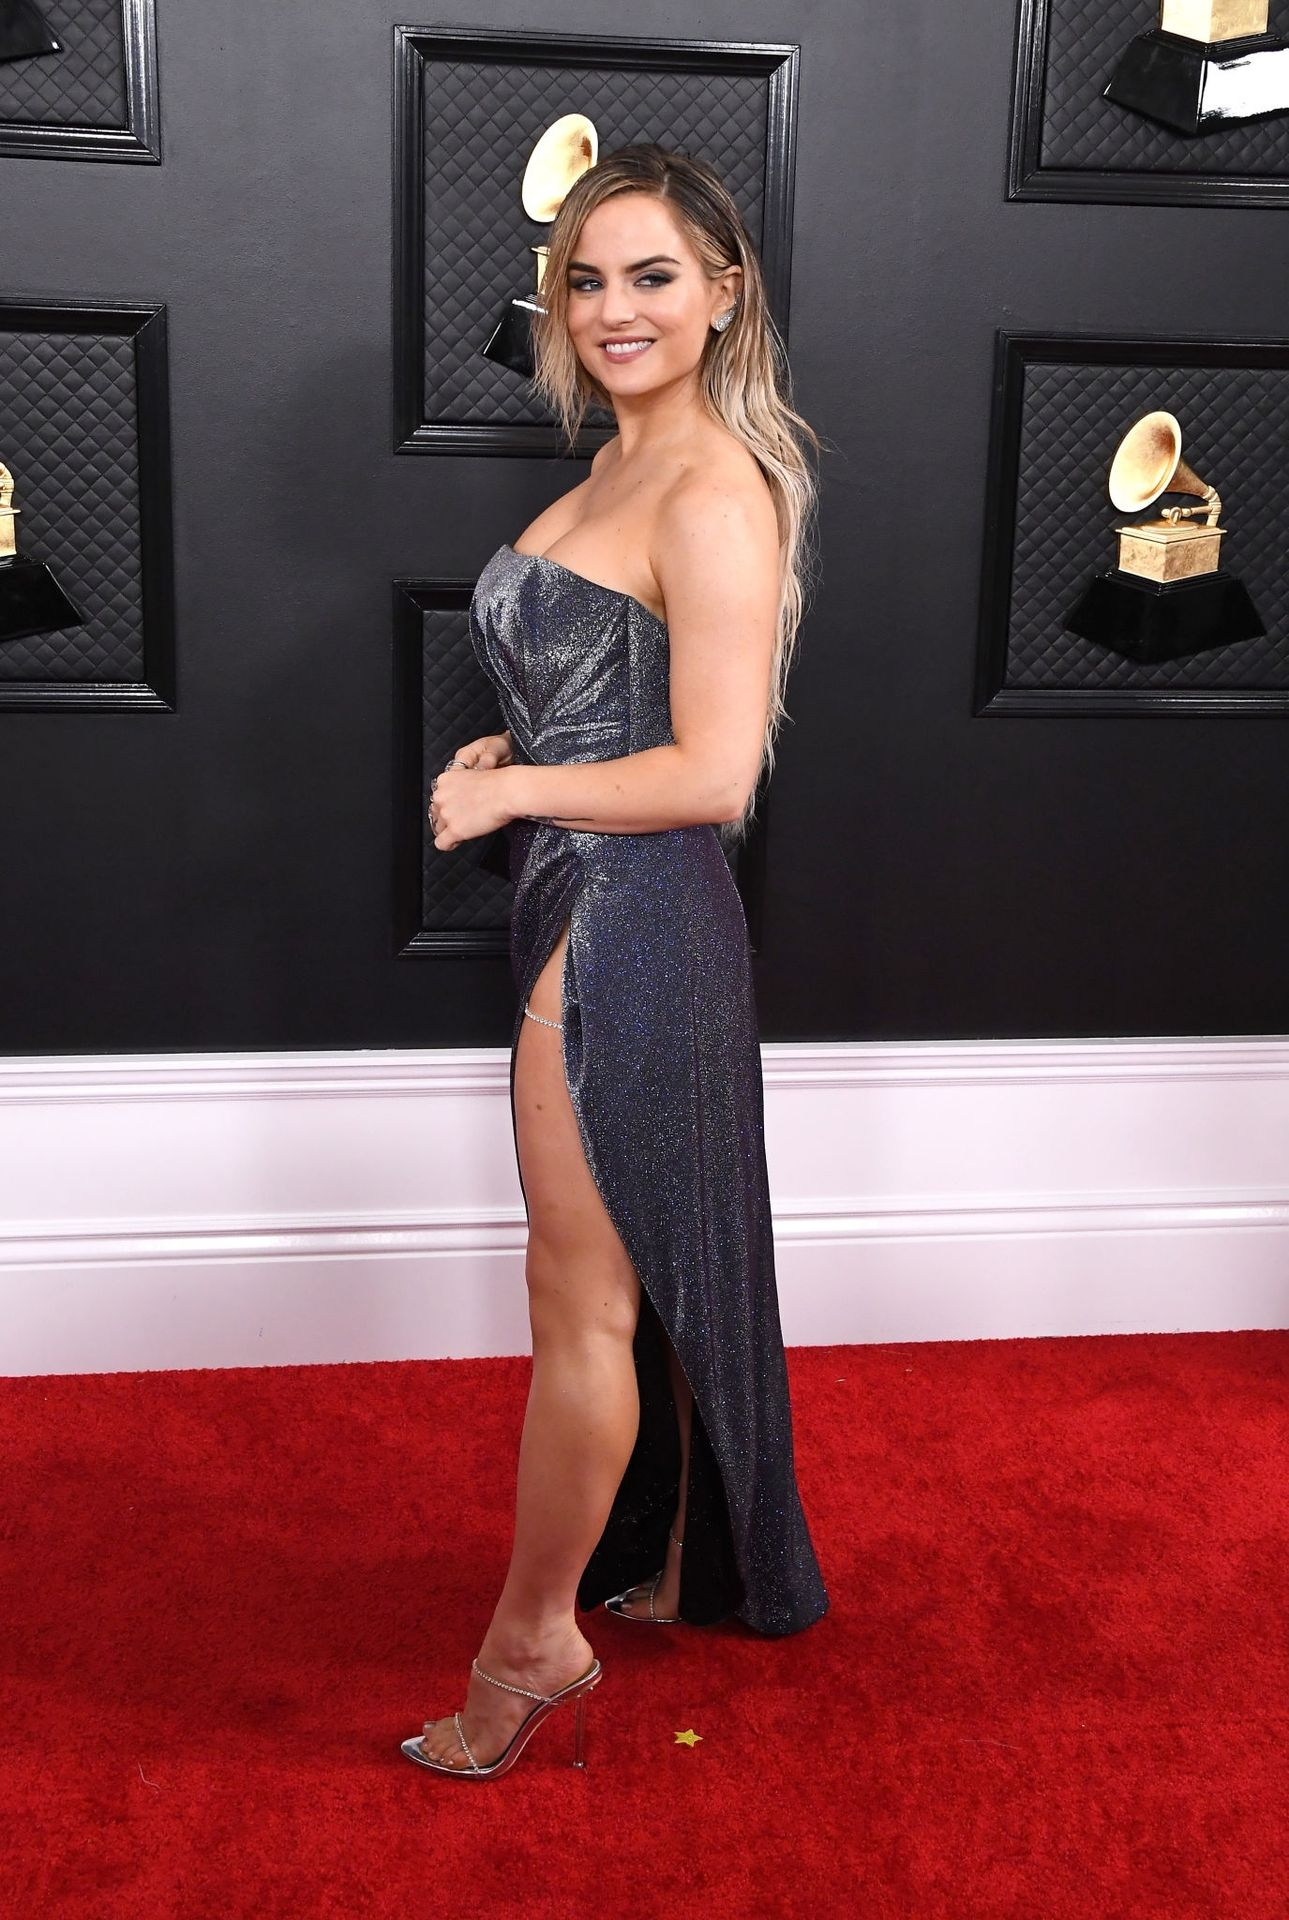 Jojo Shows Her Legs And Cleavage At The 62nd Annual Grammy Awards 0026